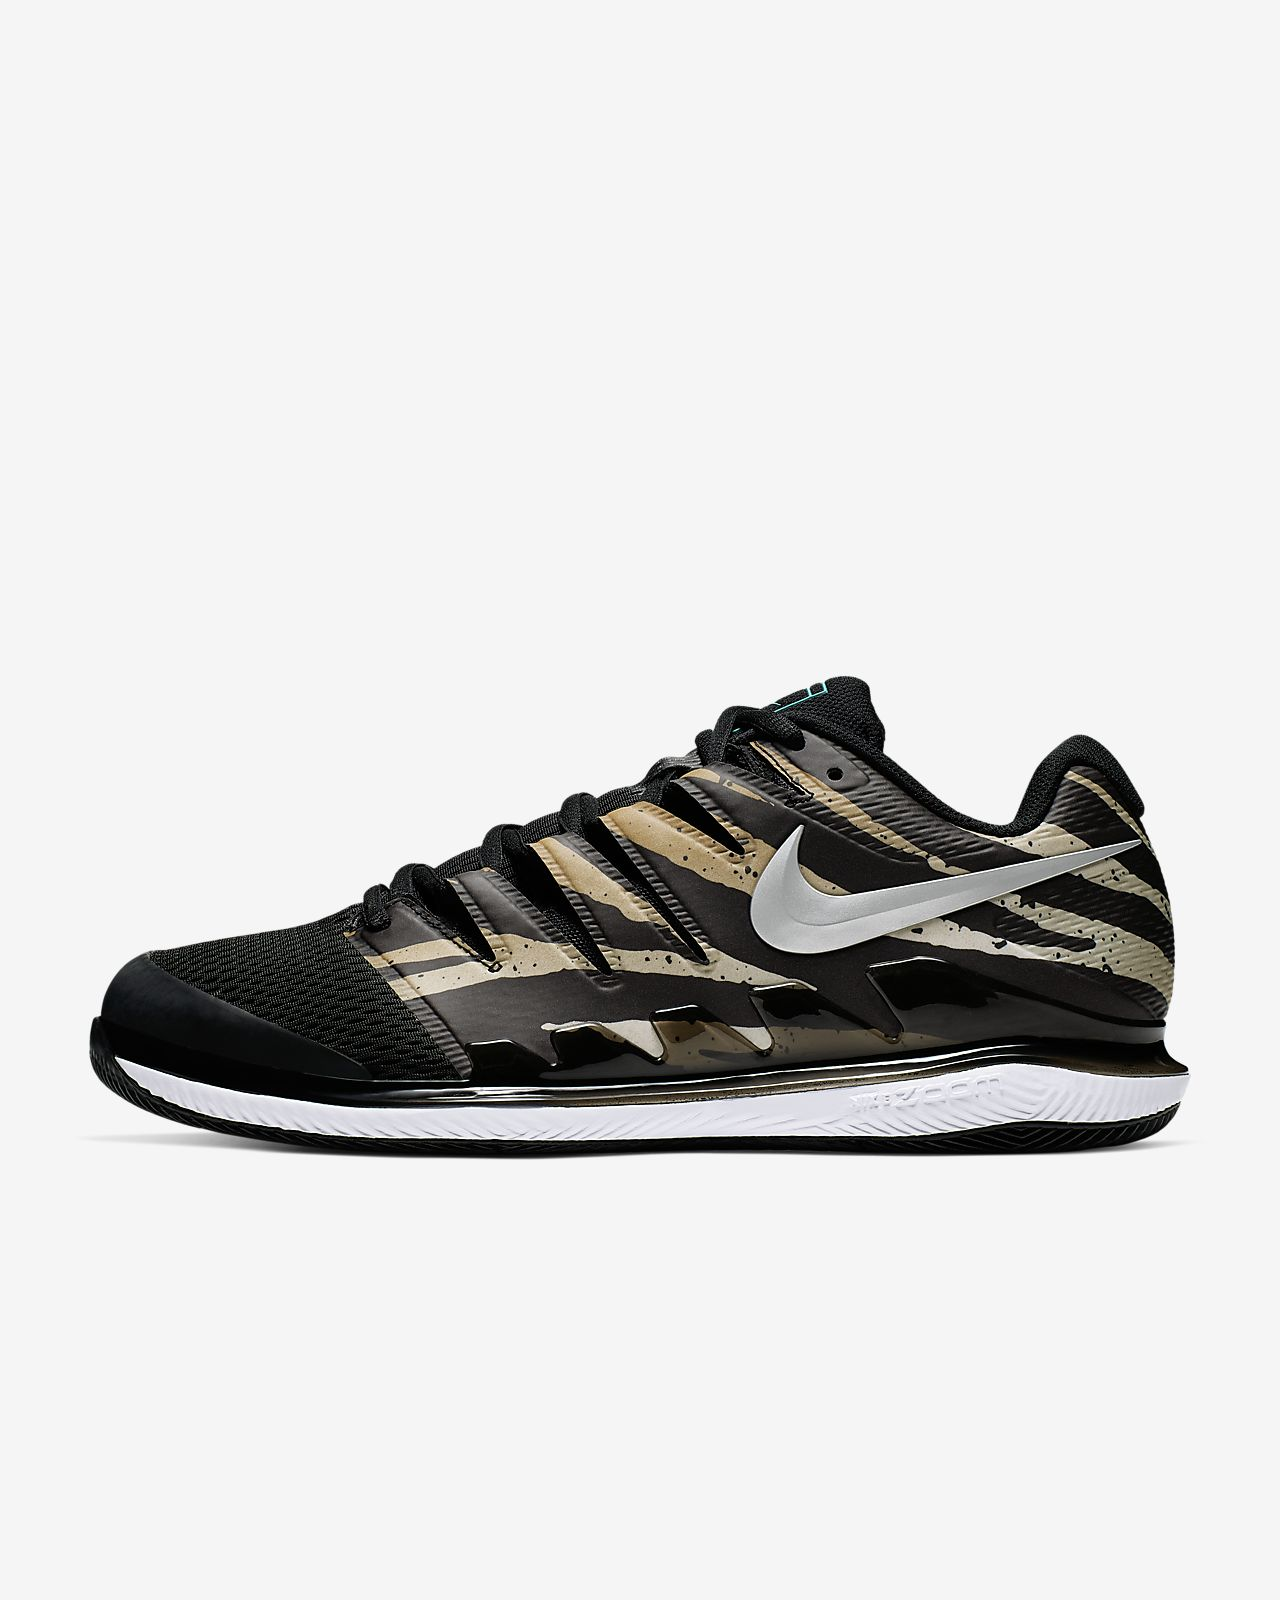 NikeCourt Air Zoom Vapor X tennissko til hard court til herre